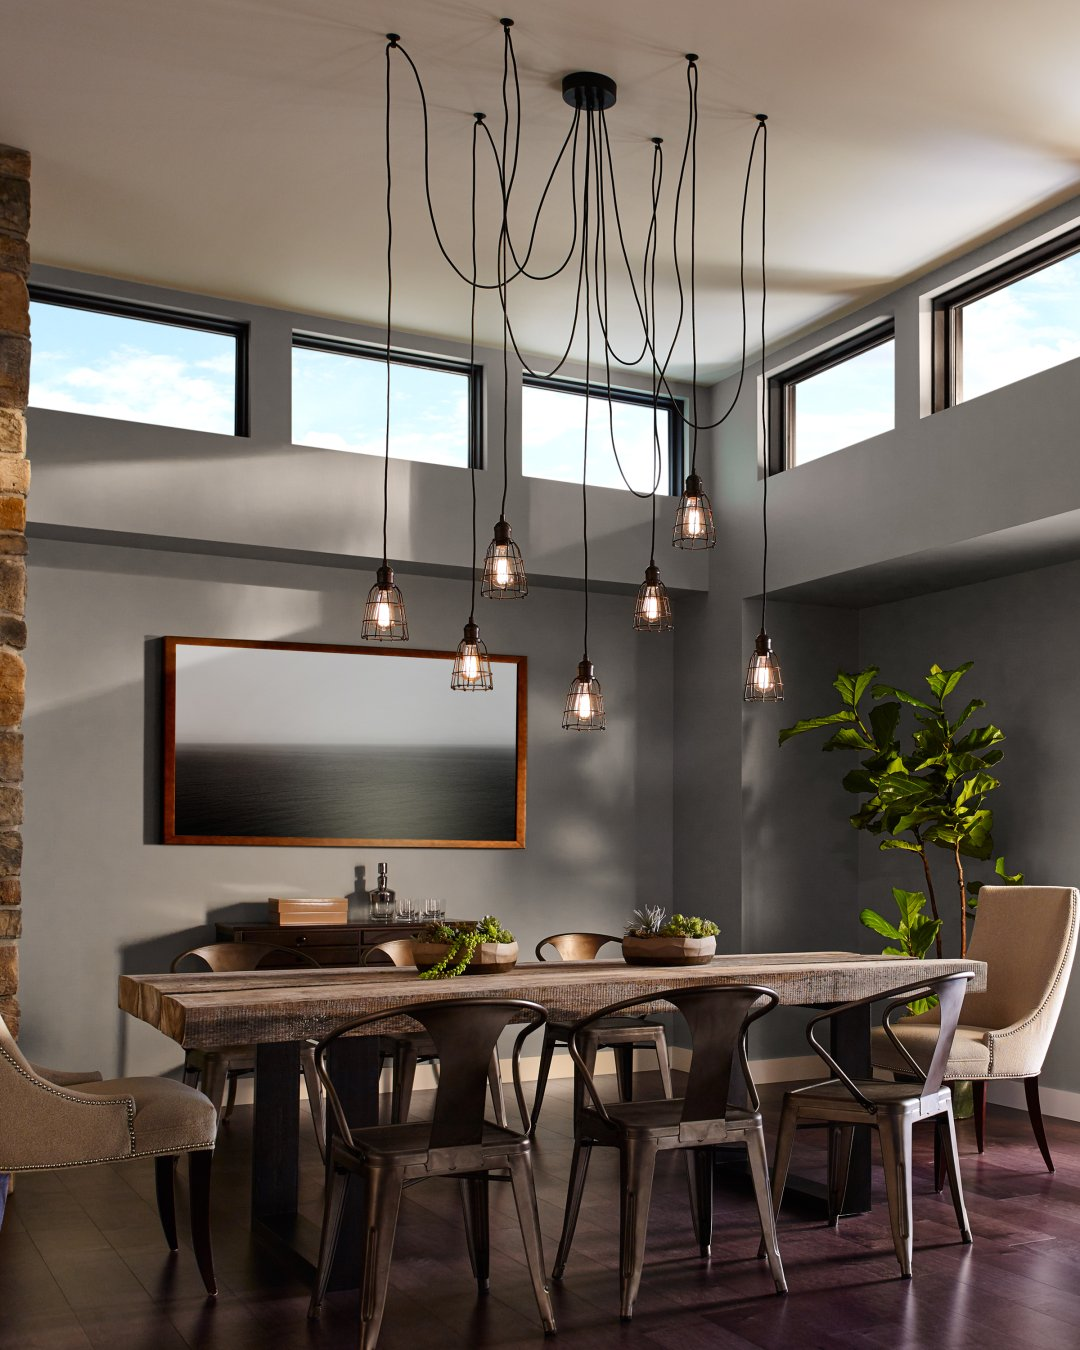 Lights Dining Room: How To Choose The Right Chandelier For Your Dining Room